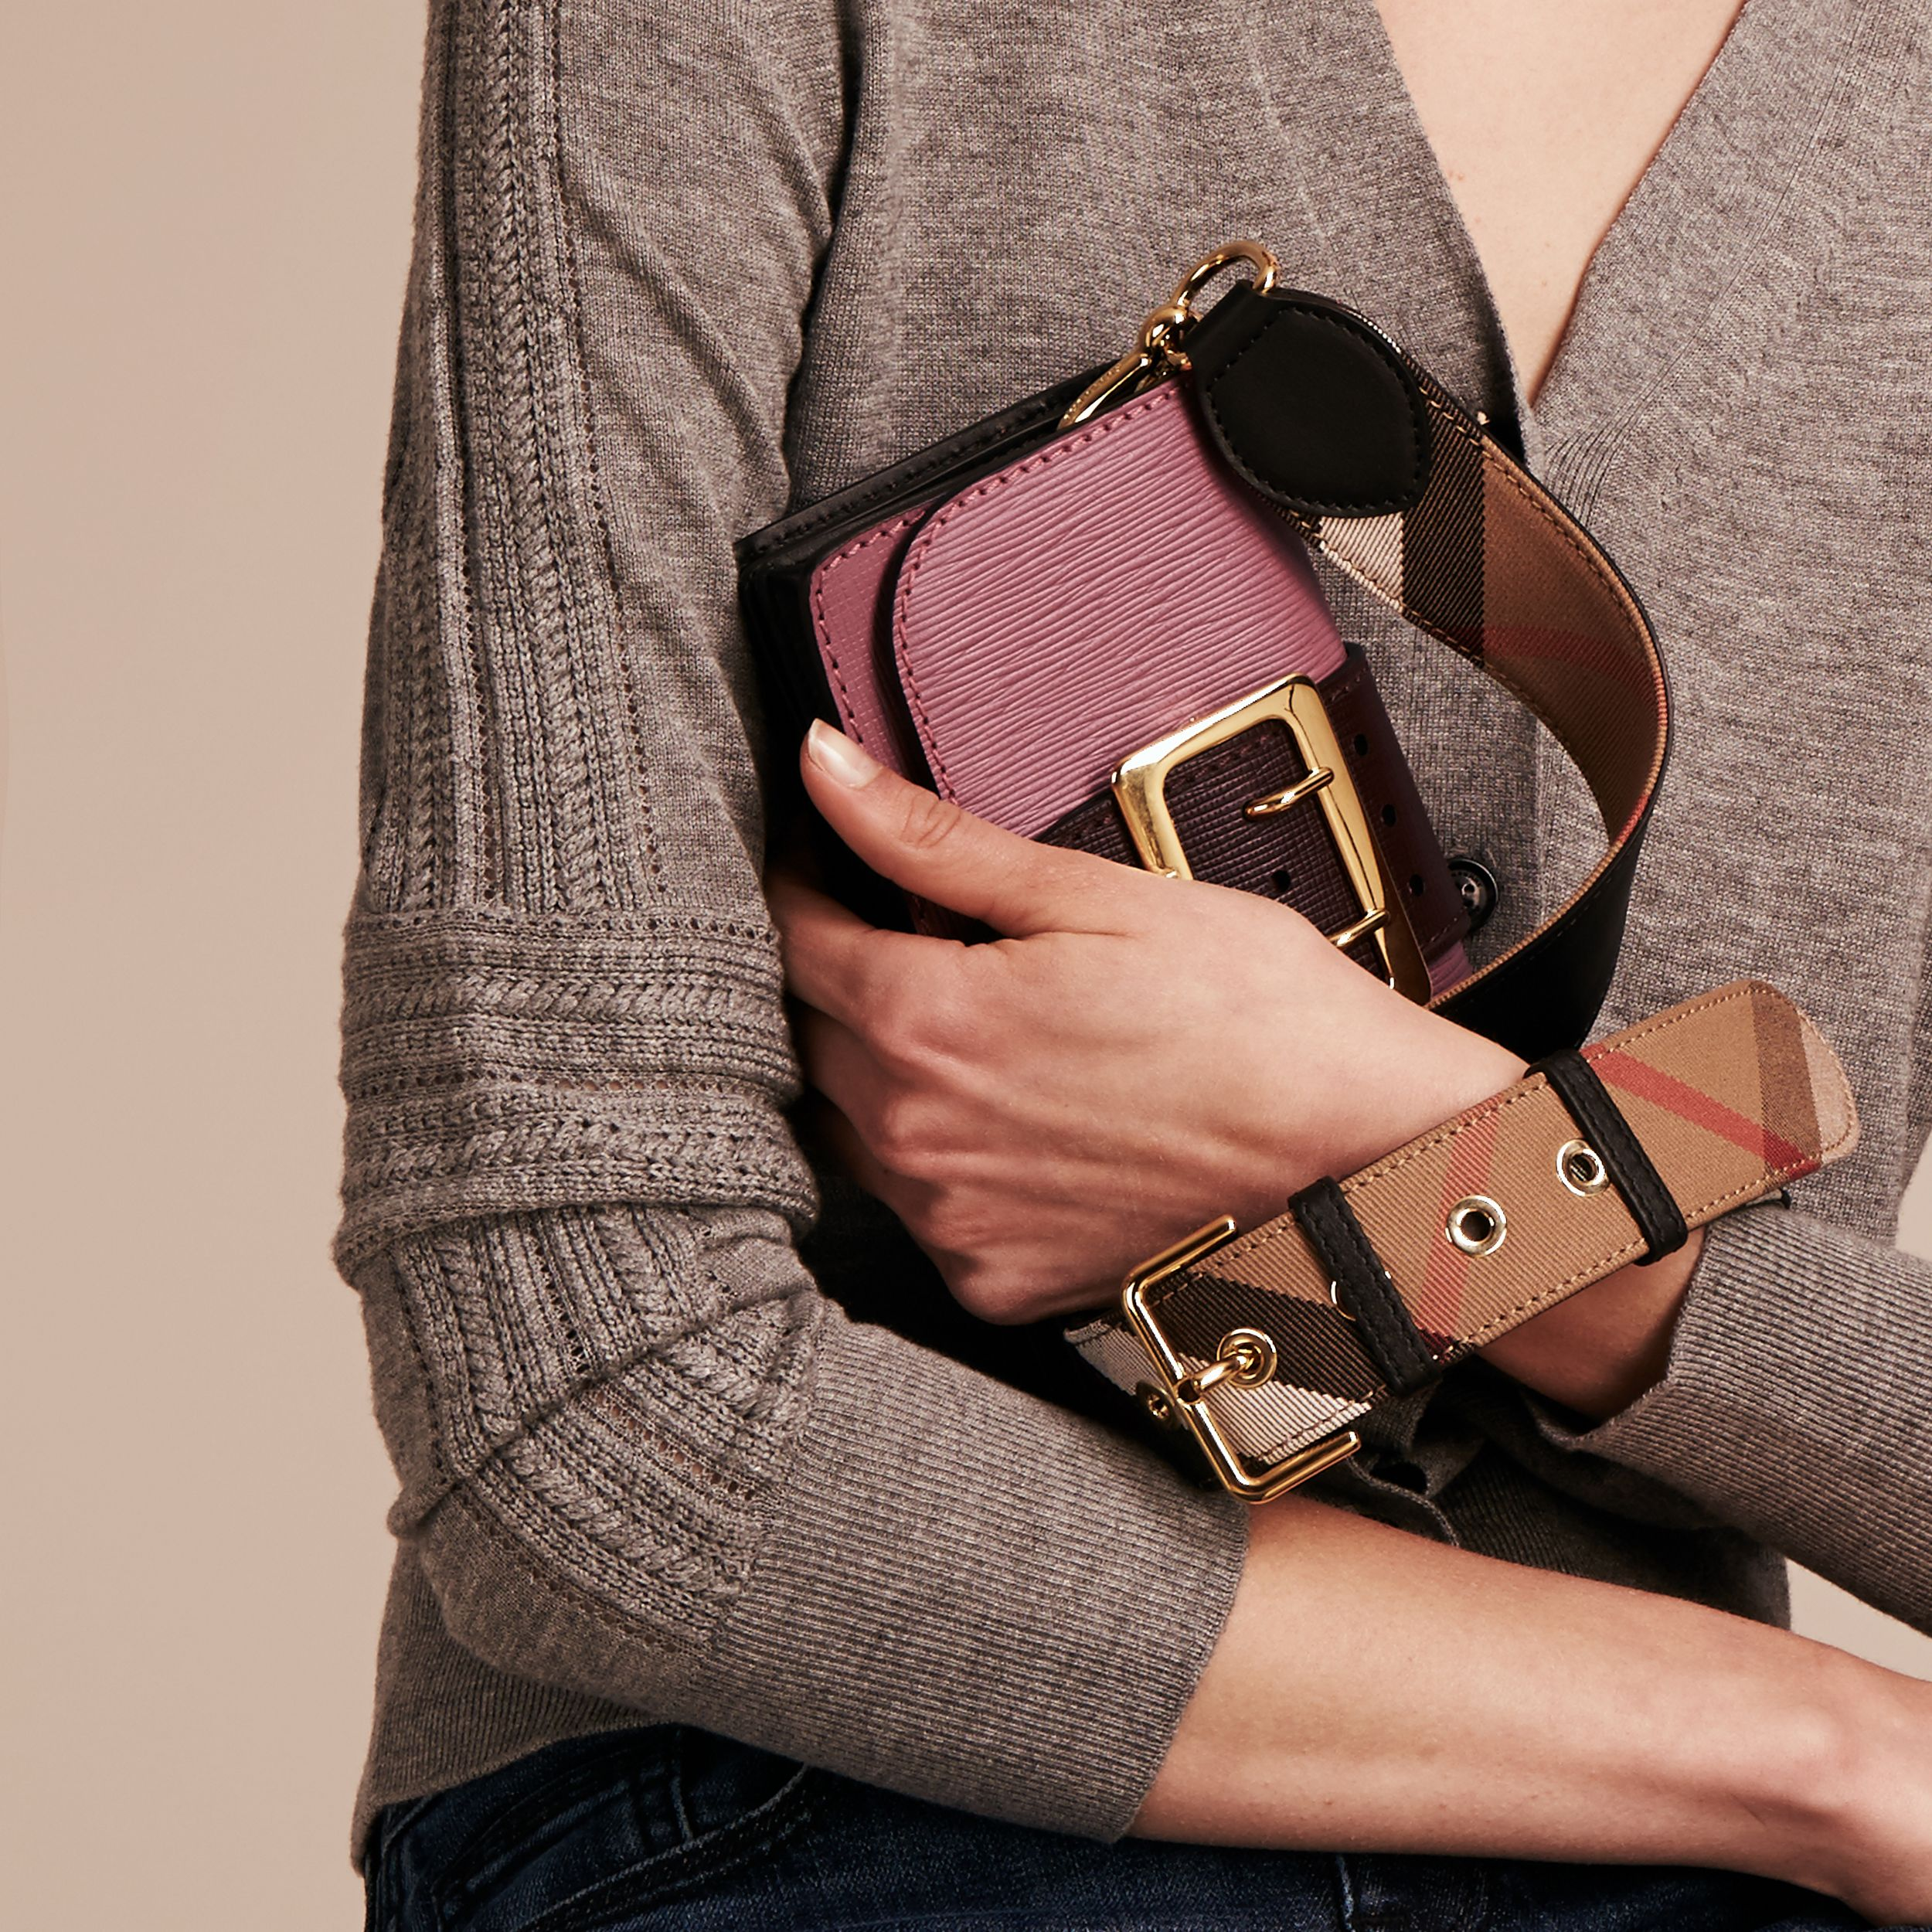 The Small Buckle Bag in Textured Leather in Dusky Pink/ Burgundy | Burberry United States - 4